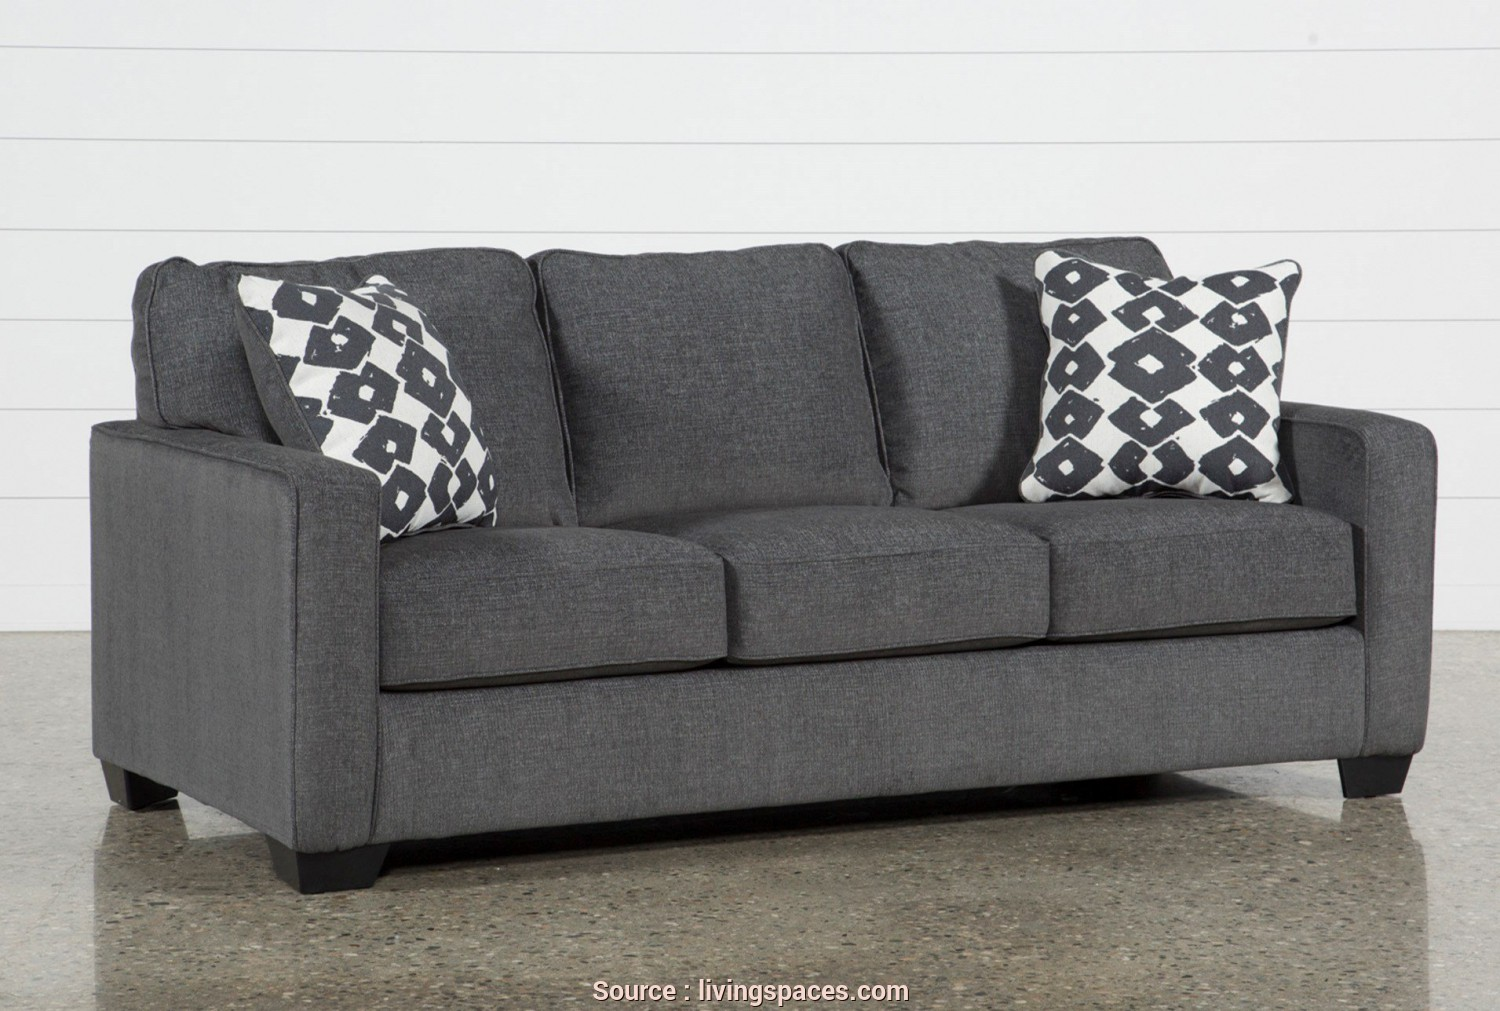 Sofa Saver Copridivano Recensioni, Deale Sofa Beds + Sleeper Sofas, Free Assembly With Delivery, Living